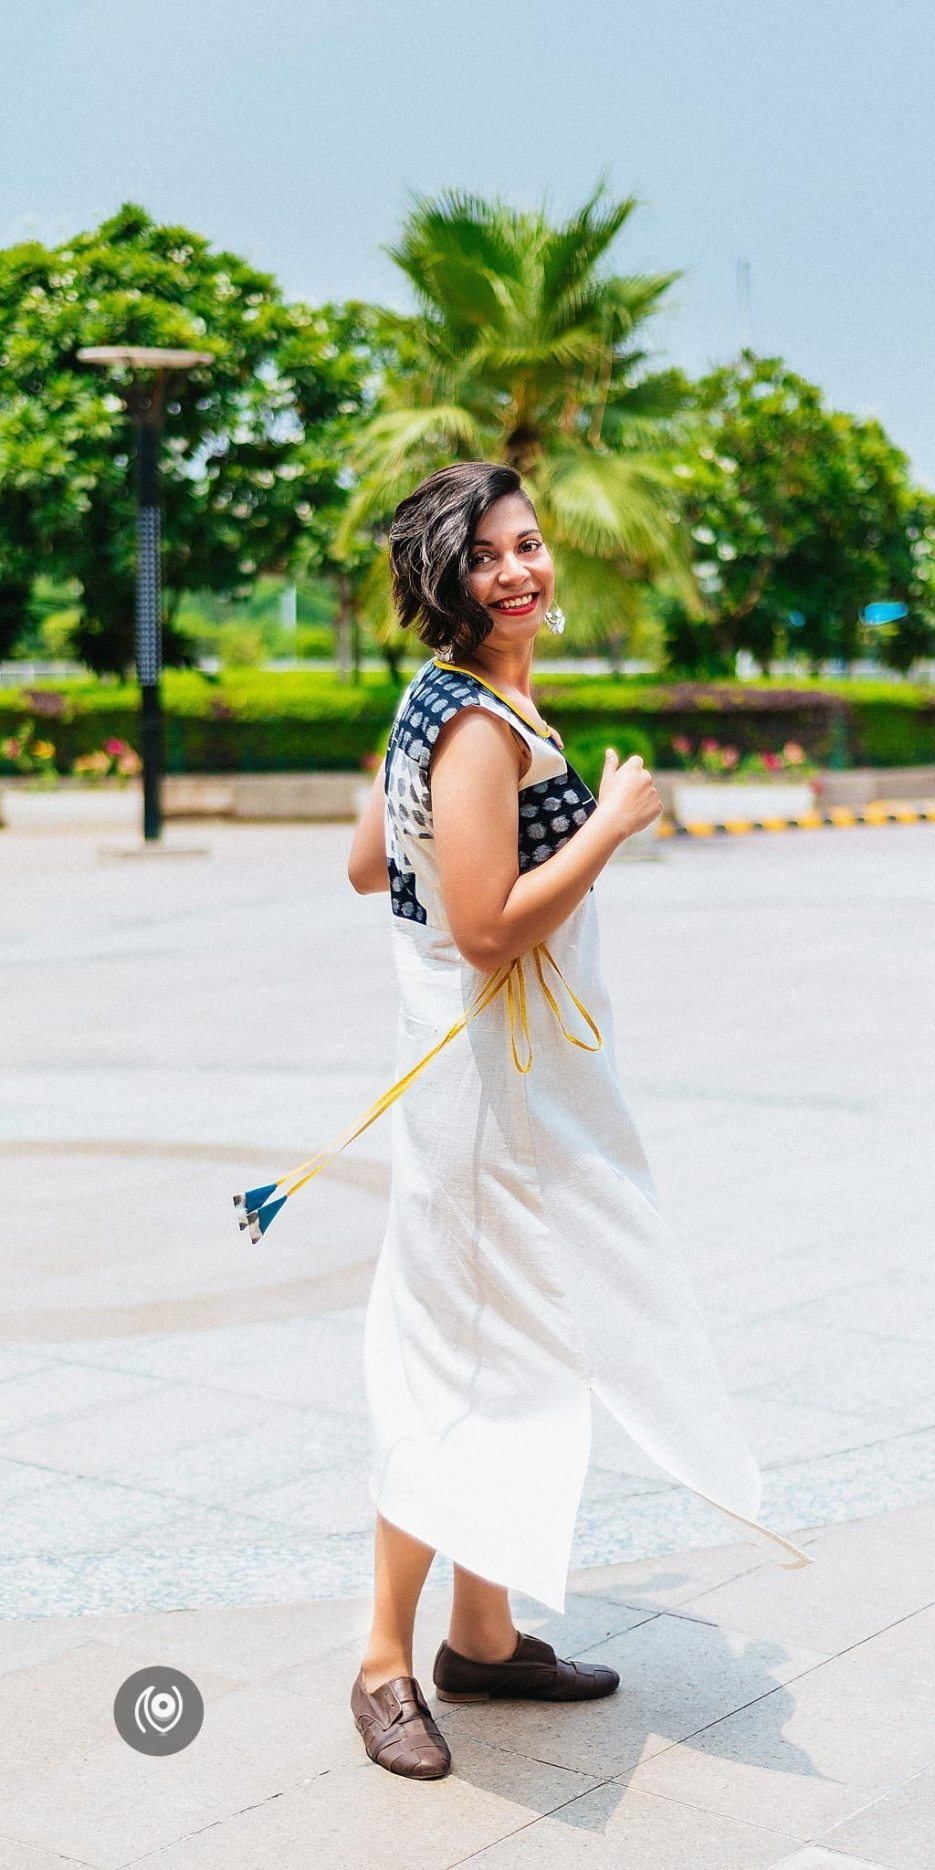 #CoverUp 43, The Meraki Project, The Essence of Me in My Work, Naina.co Luxury & Lifestyle, Photographer Storyteller, Blogger.